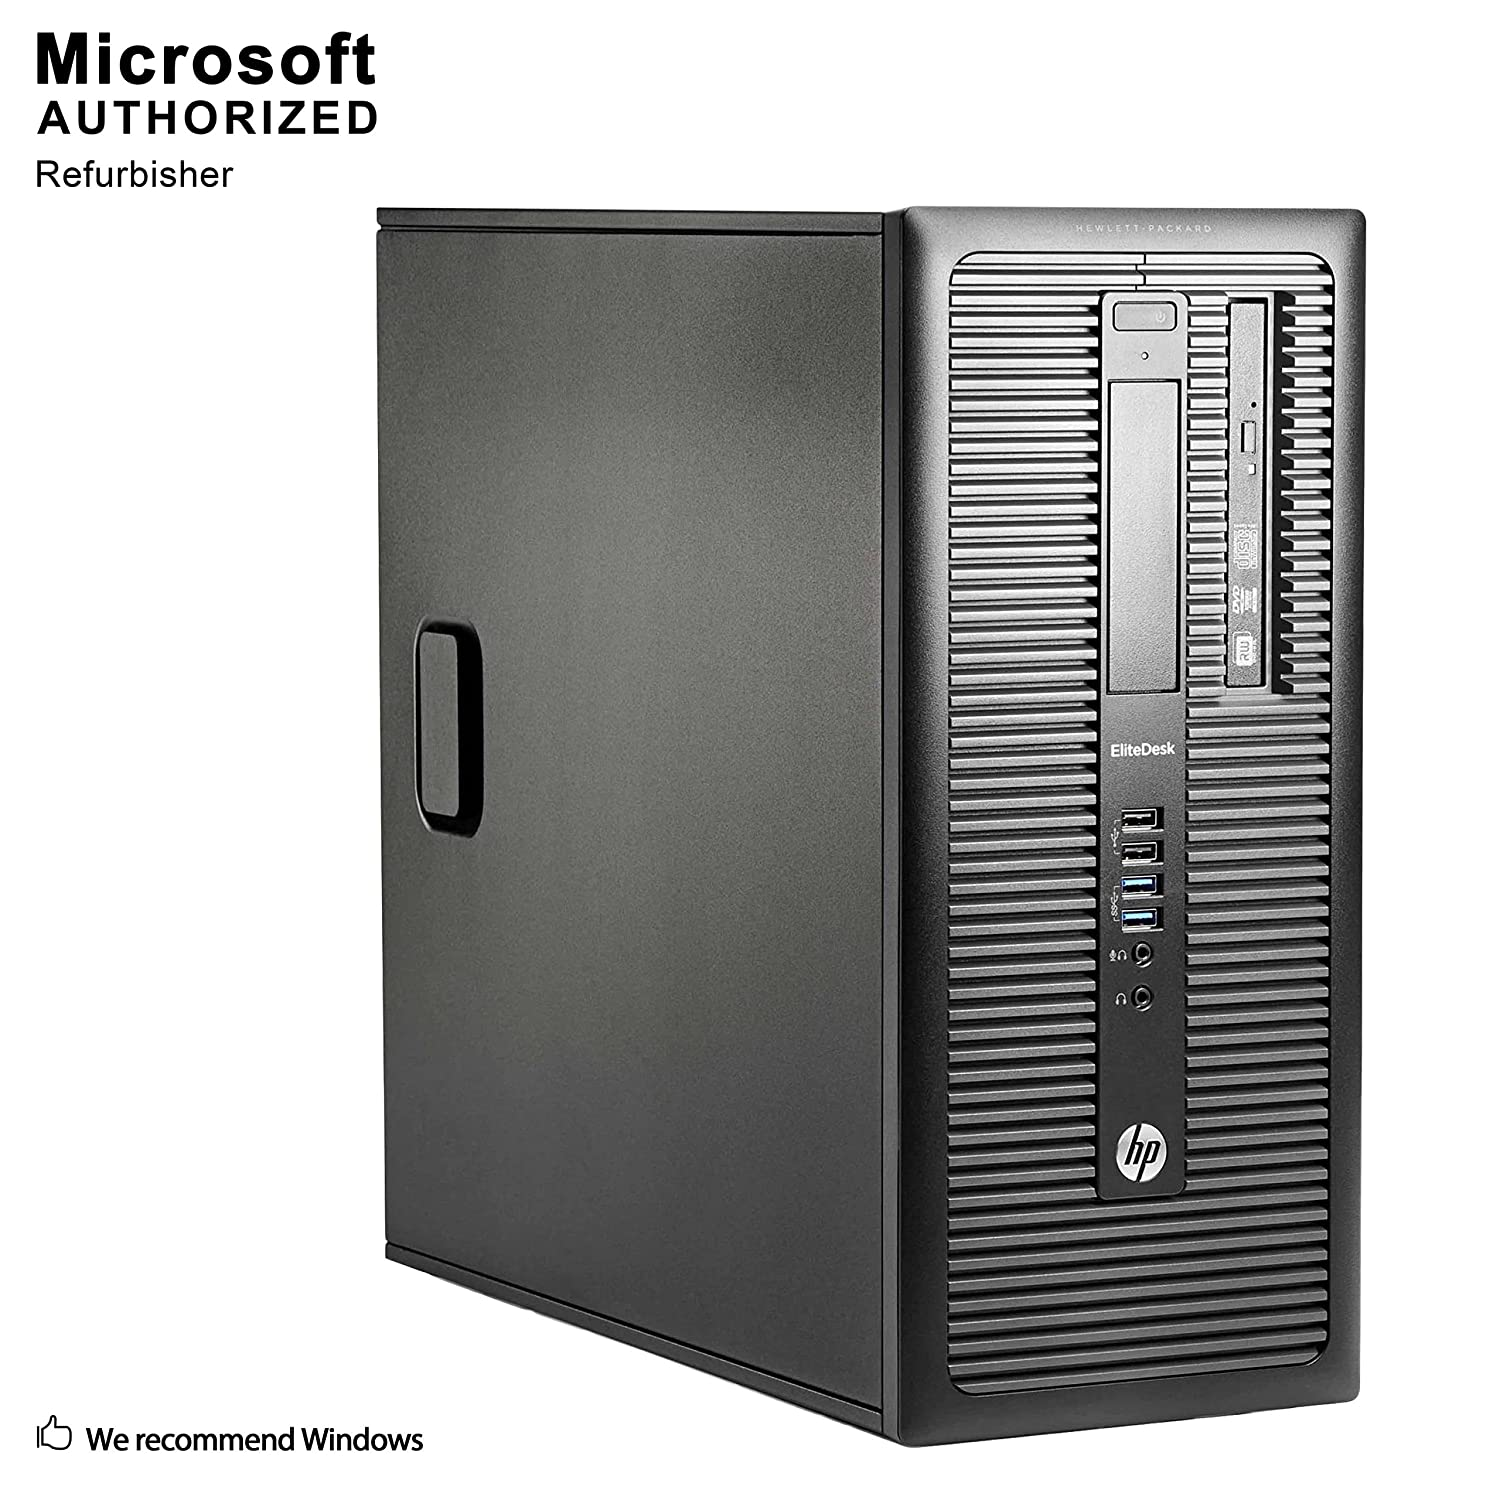 Fastest HP EliteDesk 800 G1 Business Tower Computer PC (Intel Ci5-4570 upto 3.9GHz, 16GB Ram, 1TB HDD + 120GB Brand New SSD, Wireless WIFI, Display Port, USB 3.0) Win 10 Pro (Renewed)